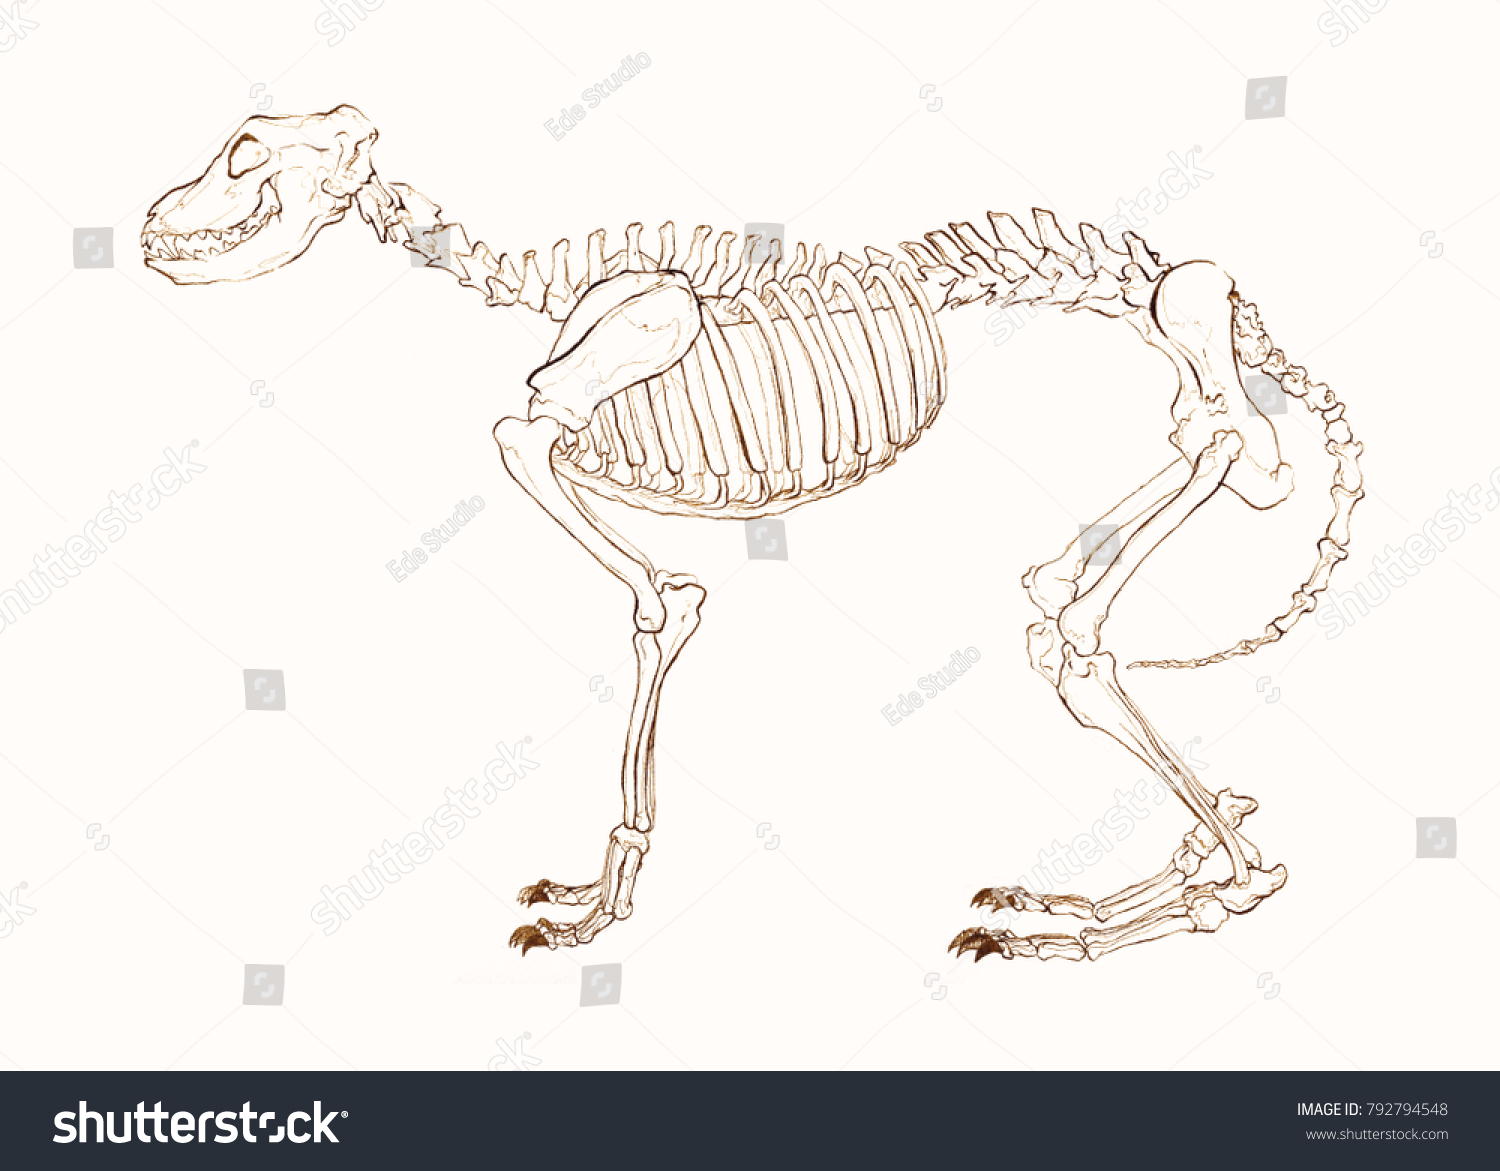 Anatomy Skeleton Dog Vintage Retro Gothic Stock Illustration ...